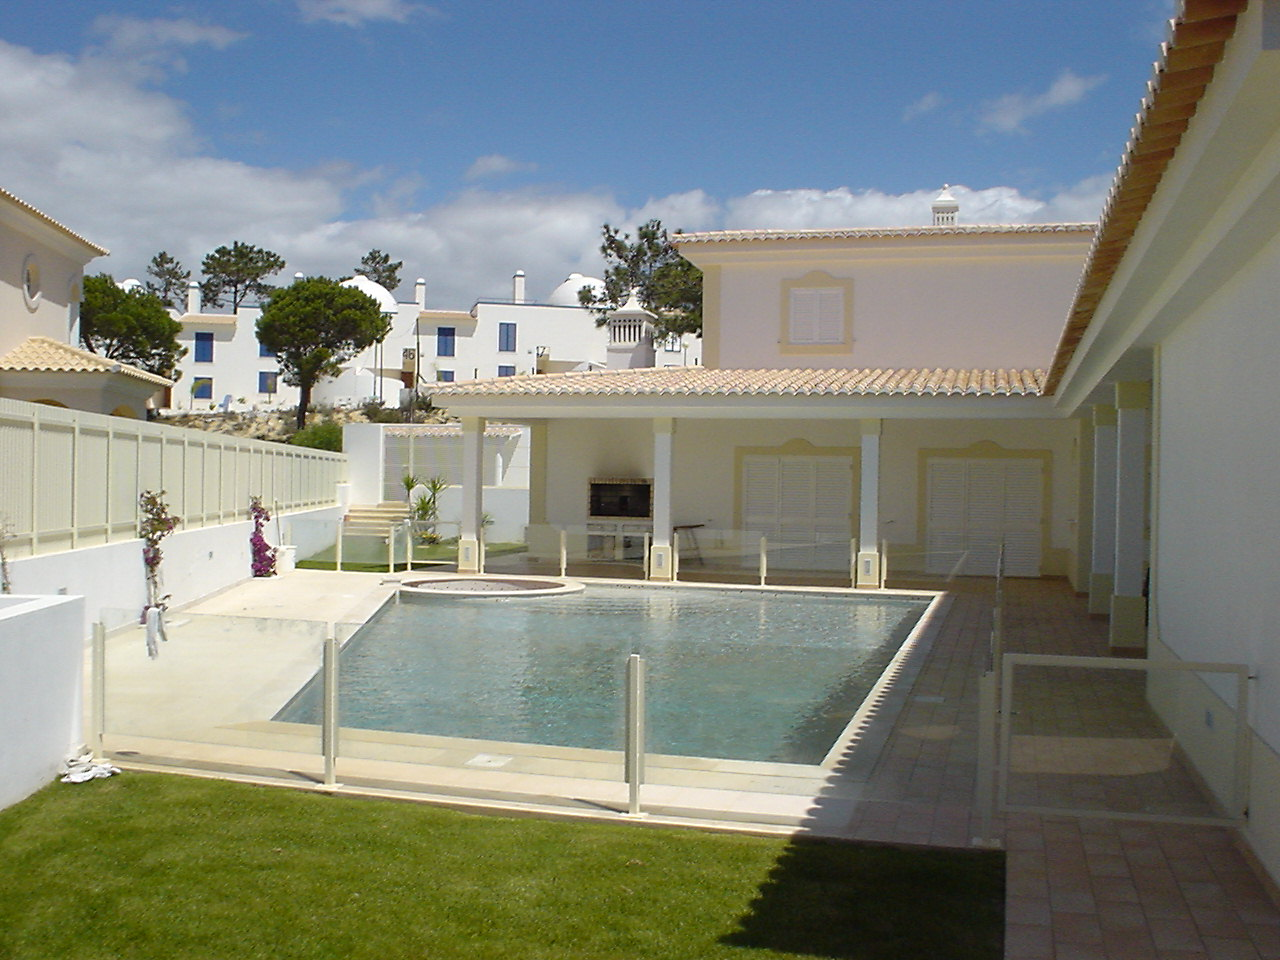 Almancil - Alojamento - Empreendimento Férias - Beautiful 4 bedroomed villa for holiday rentals - ID 7003